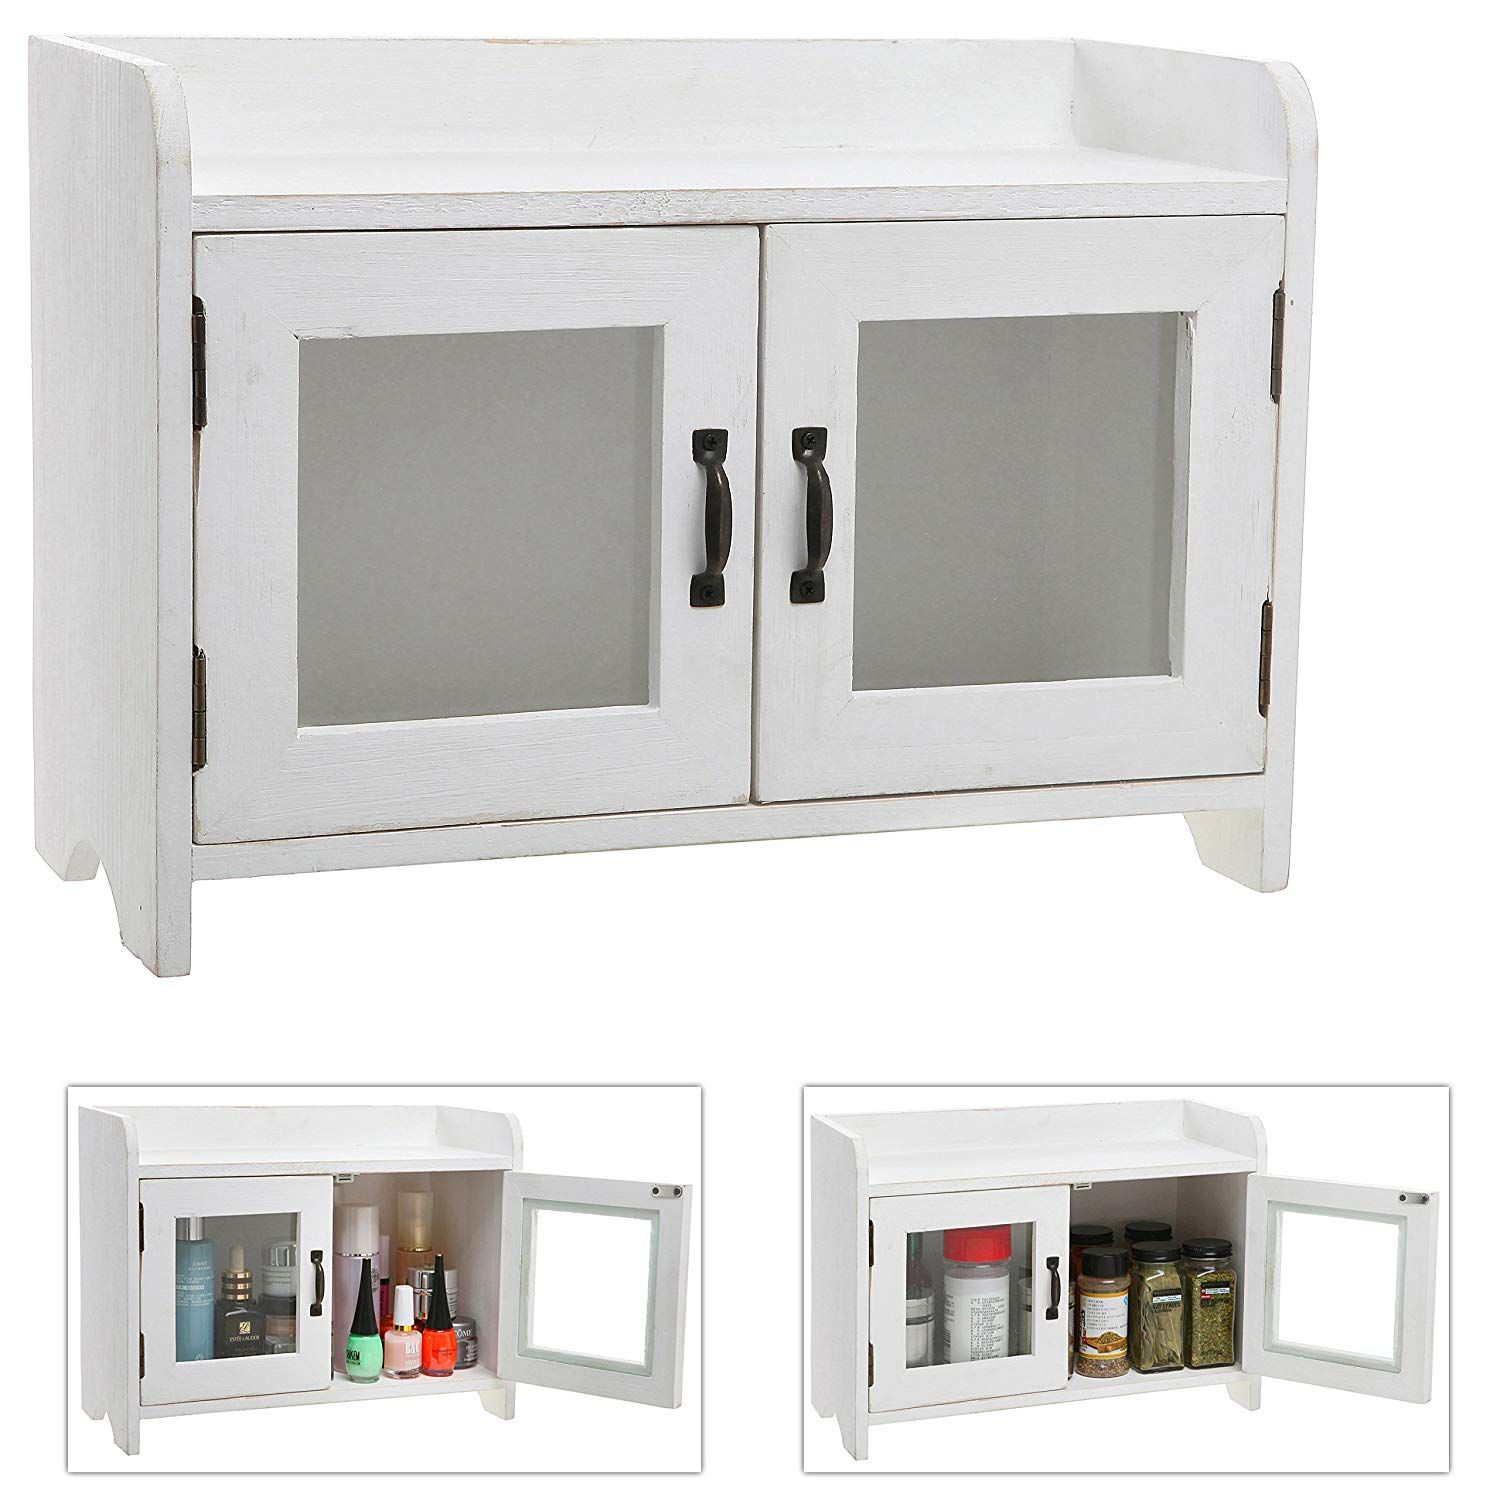 Chic Living Roomideas: MyGift Antique White Wood Kitchen & Bathroom Countertop